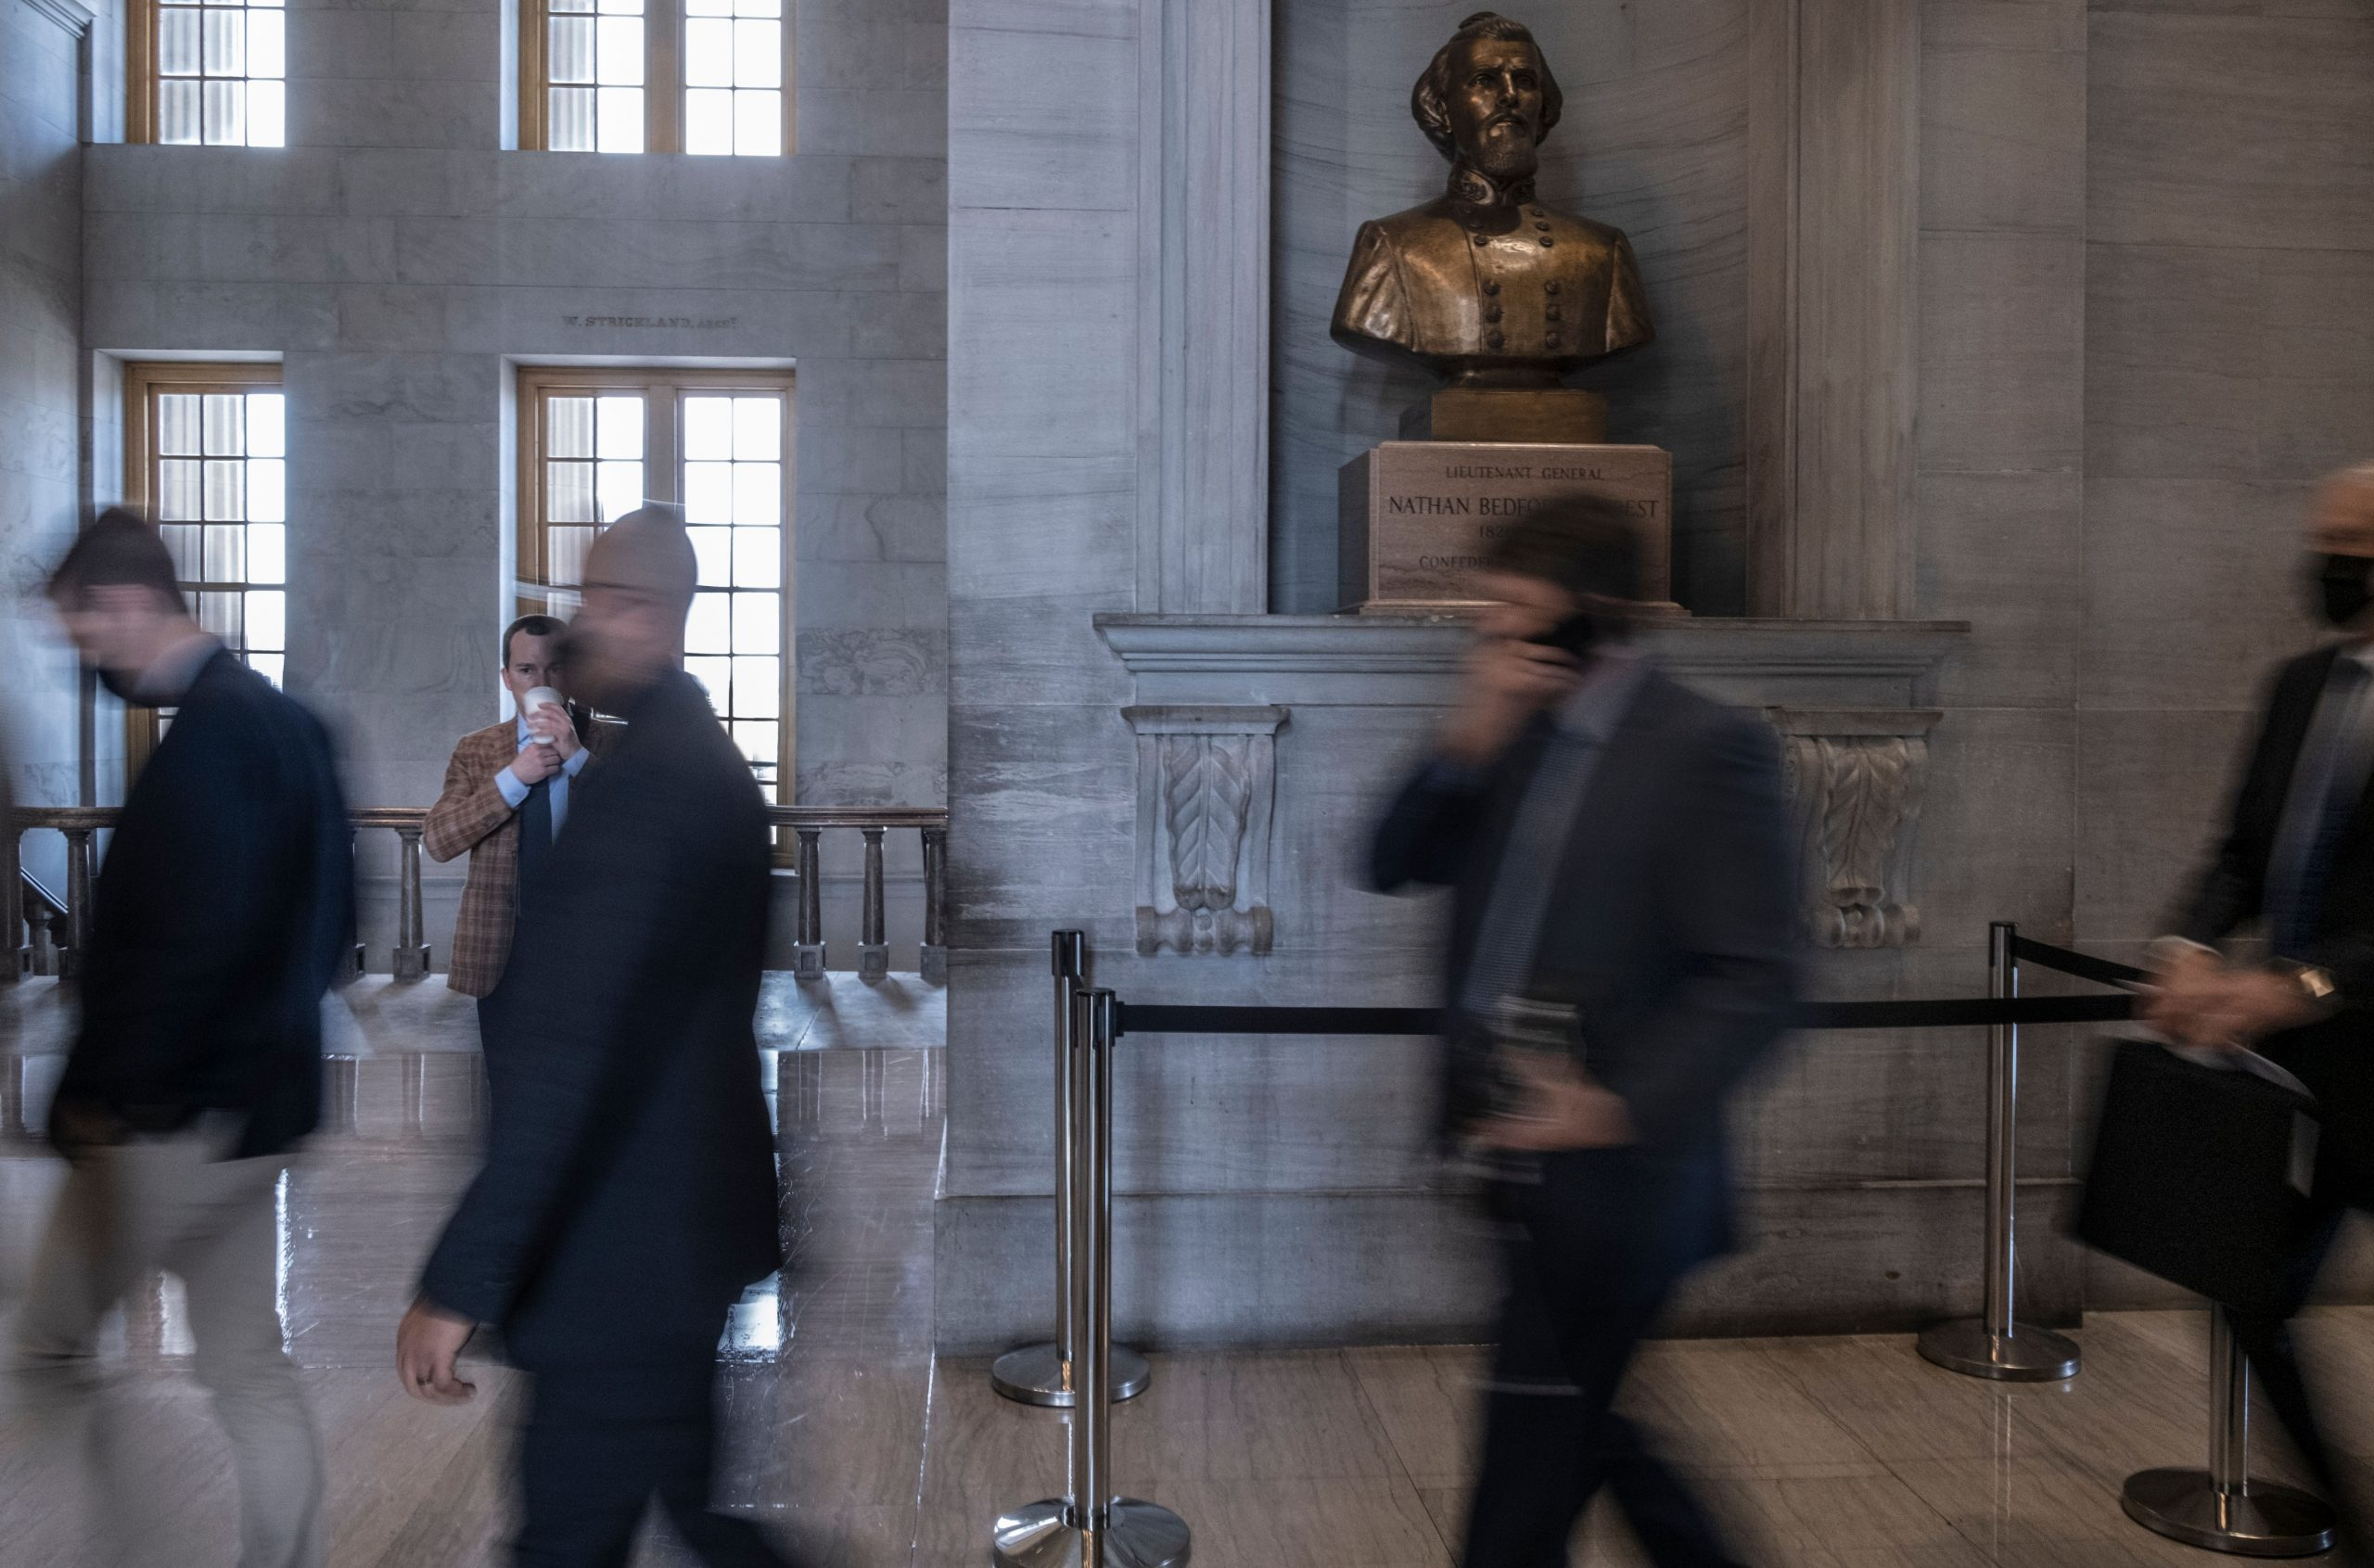 Slave trader, Confederate general: the Nathan Bedford Forrest bust sits atop a perch outside the Tennessee House of Representatives Chamber. (Photo: John Partipilo)